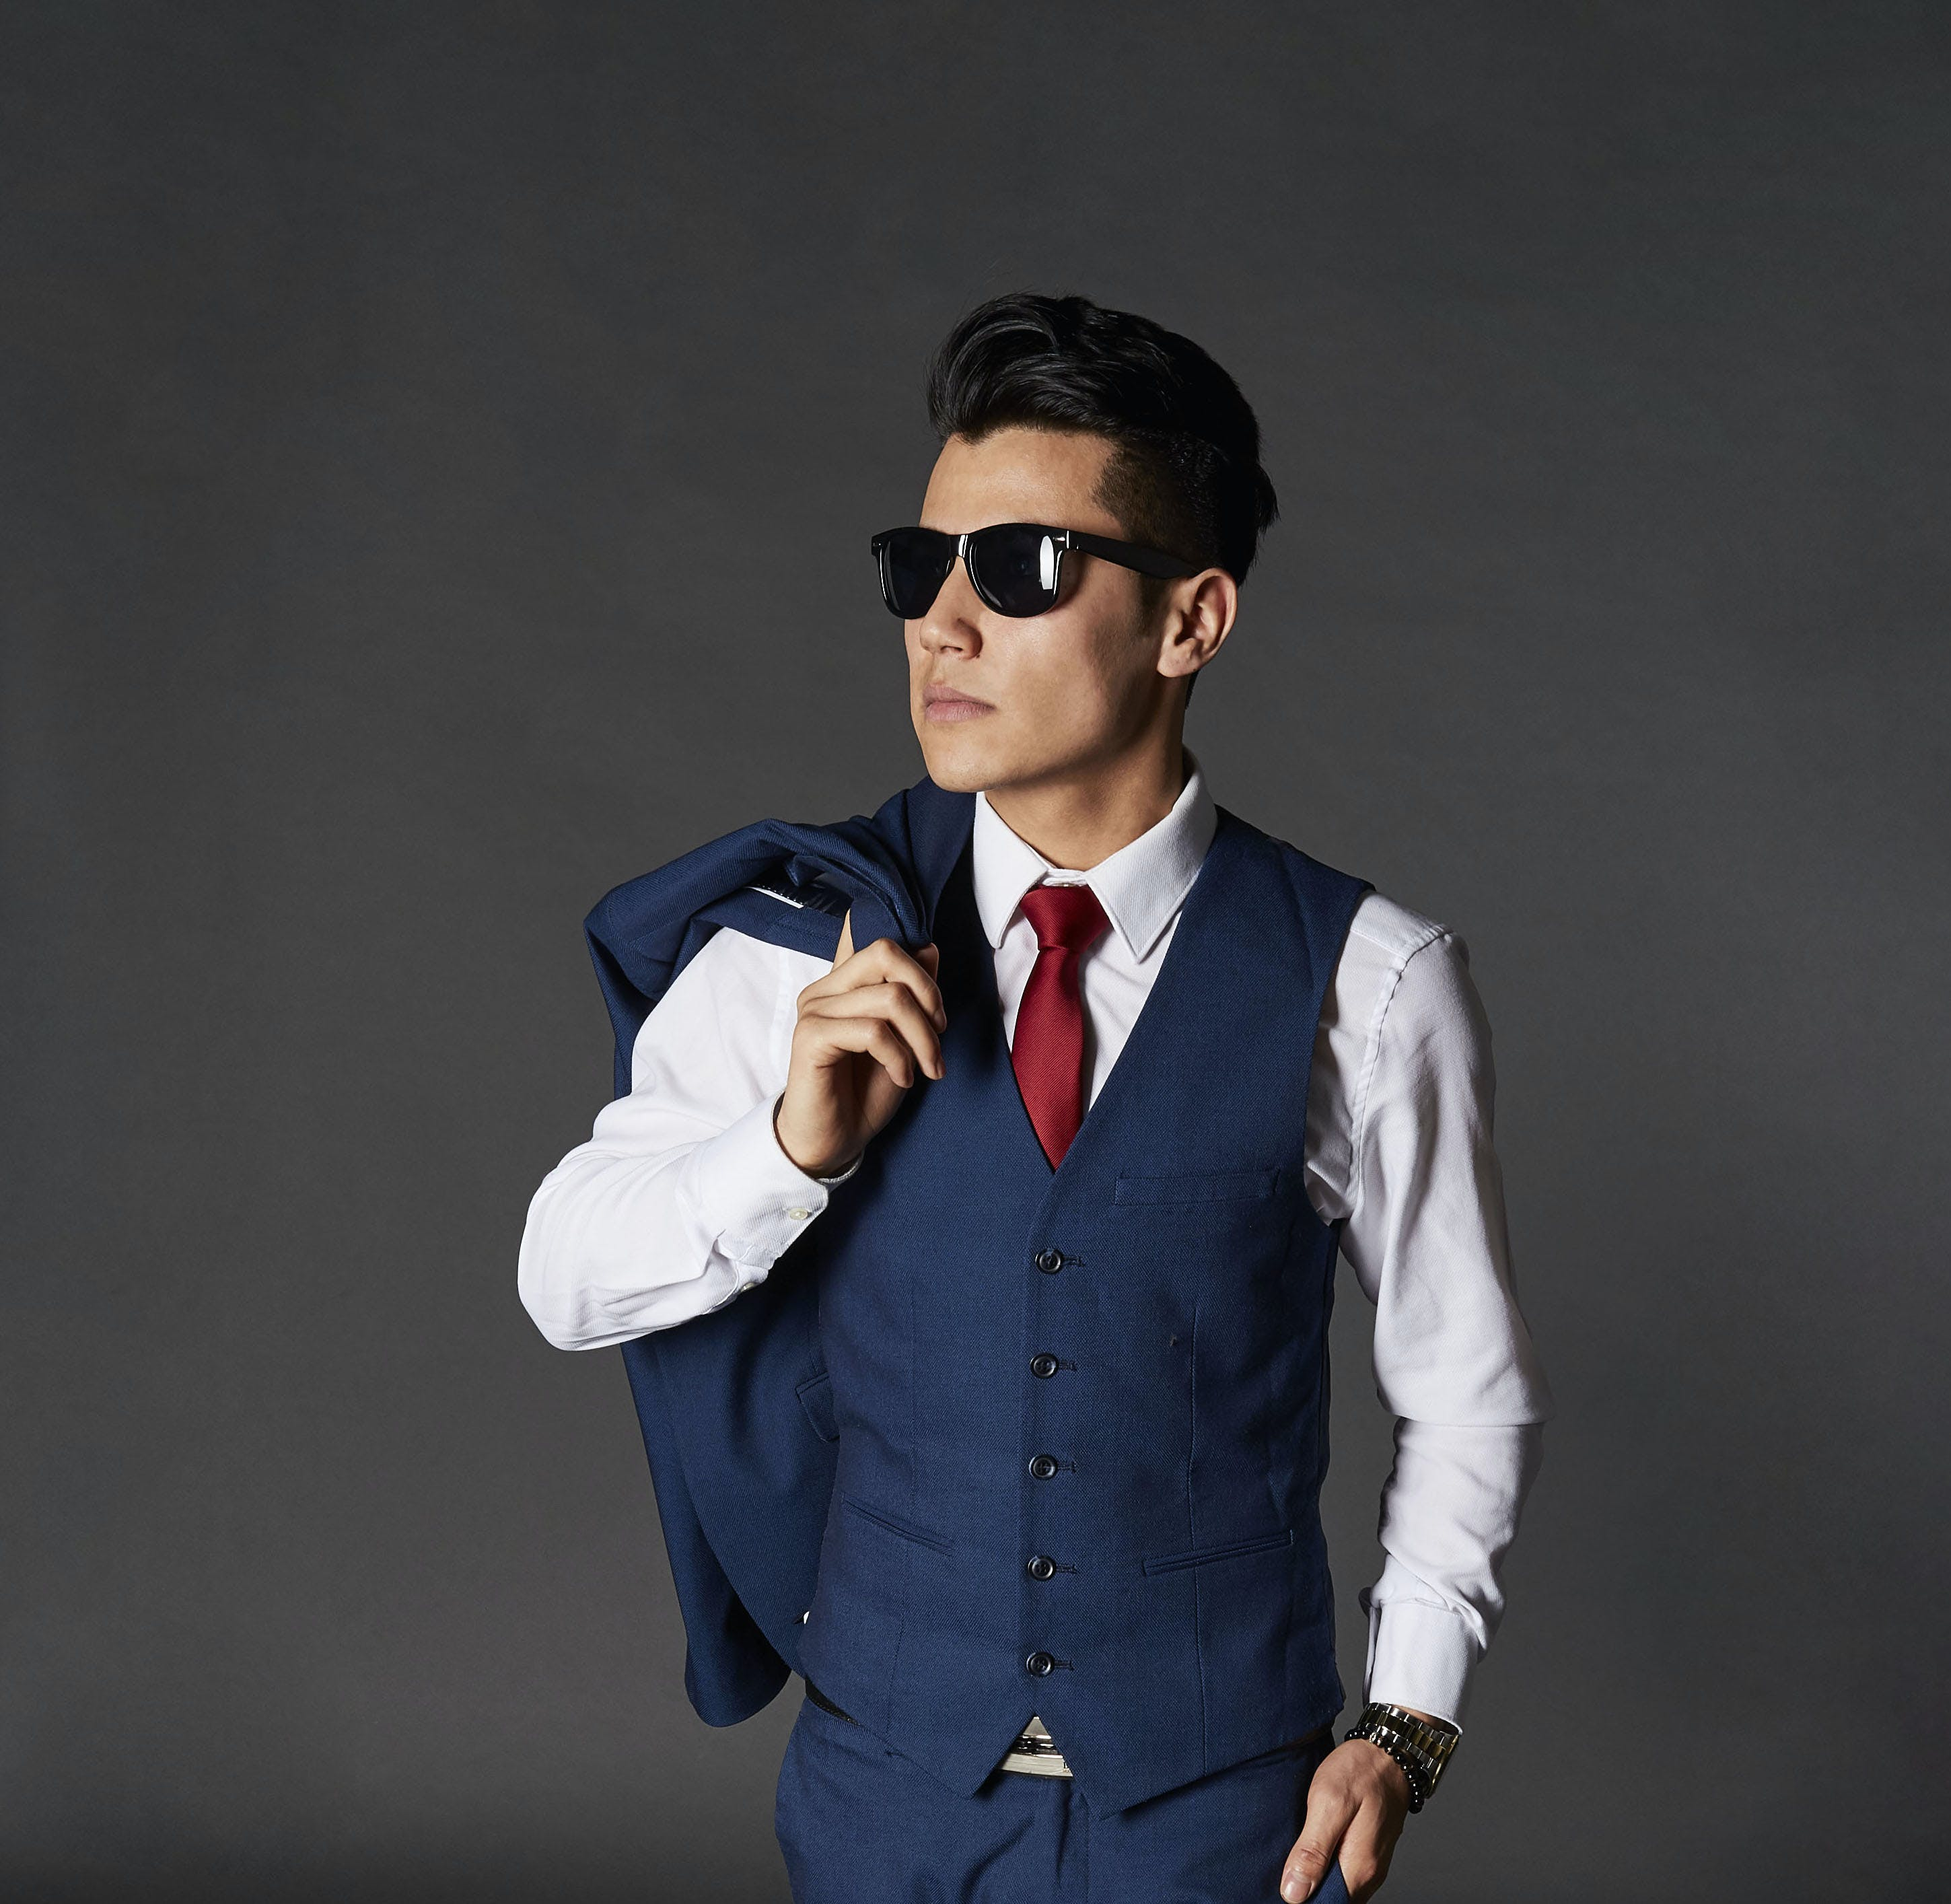 Man Wearing Blue Suit Posing Against Gray Wall